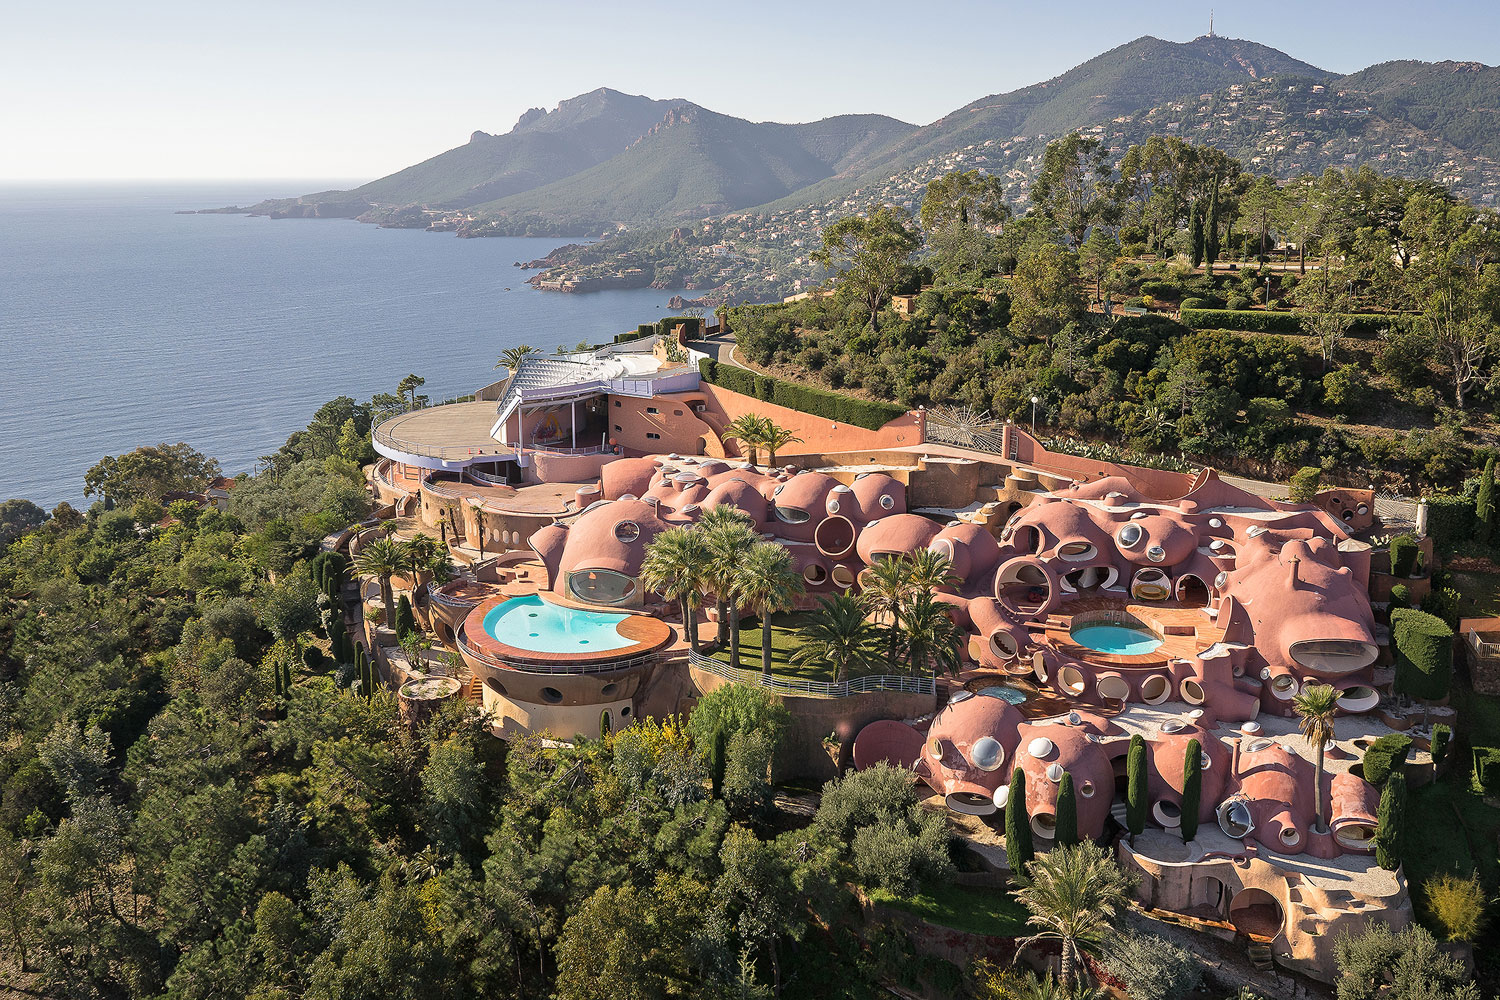 This enchanting Bubble Palace, aka Le Palais Bulles, is the fairytale retreat of legendary French fashion designer Pierre Cardin.